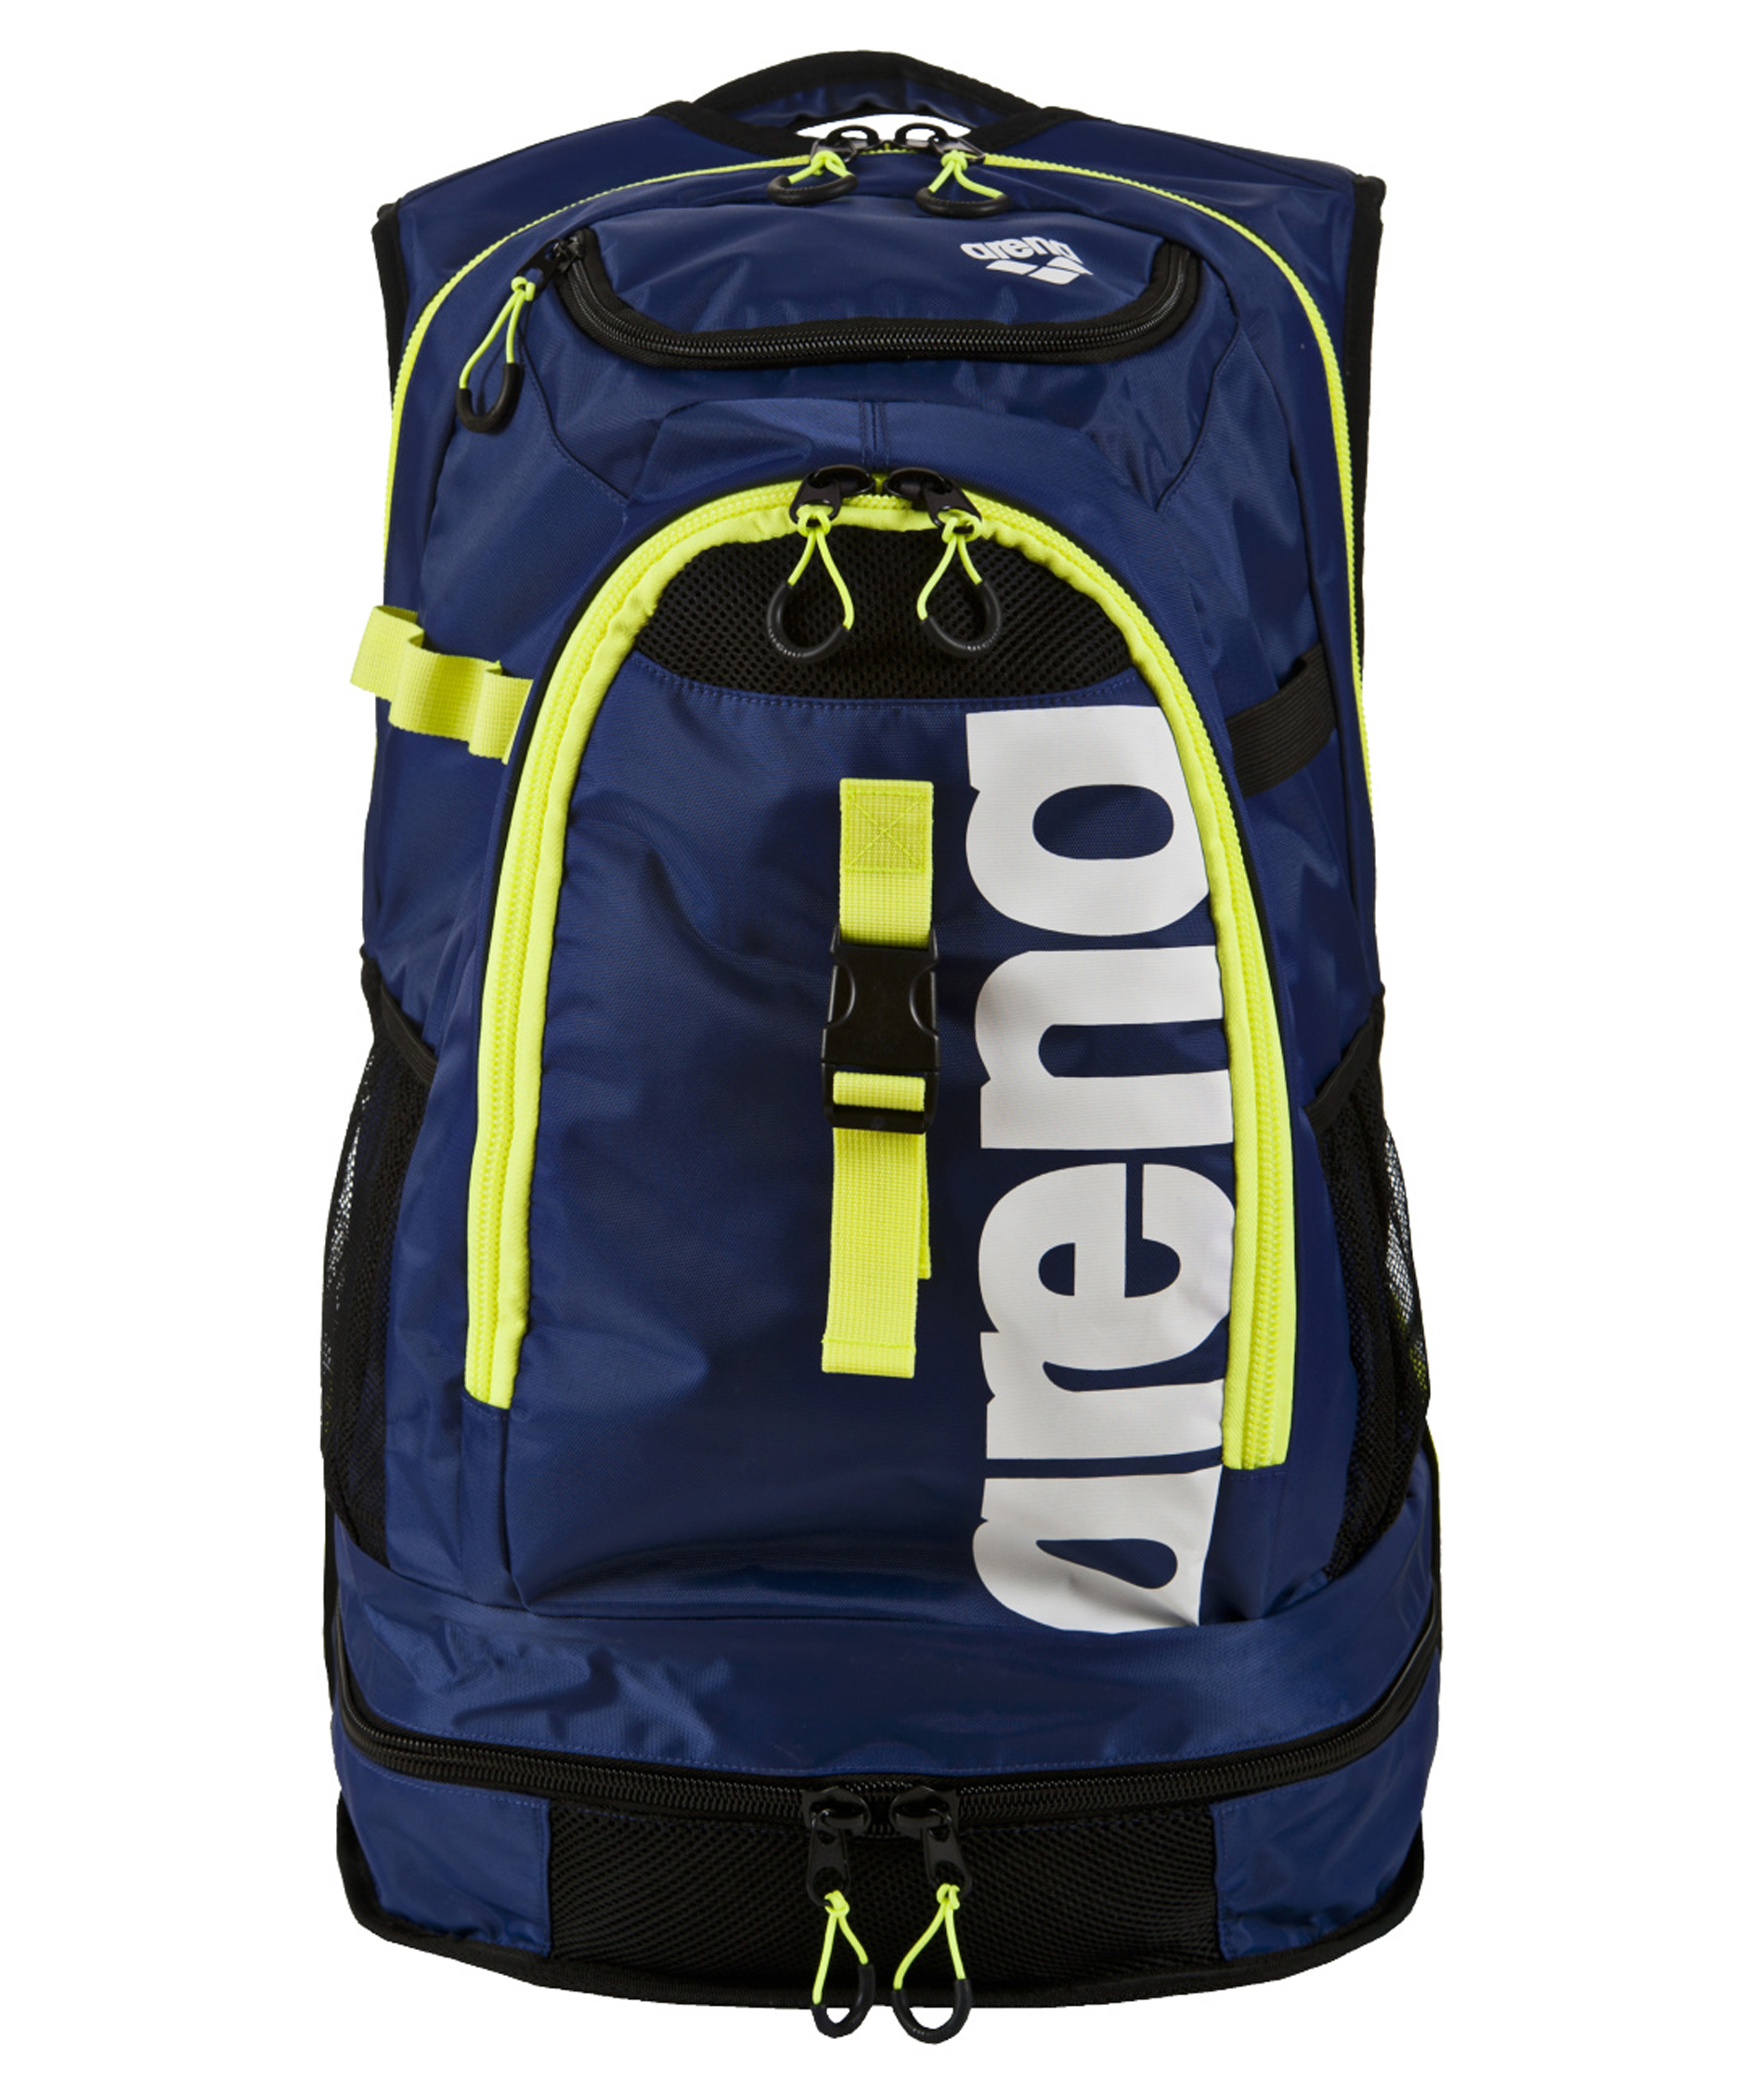 Arena Fastpack 2.1 Backpack - Royal Blue/Fluo Yellow